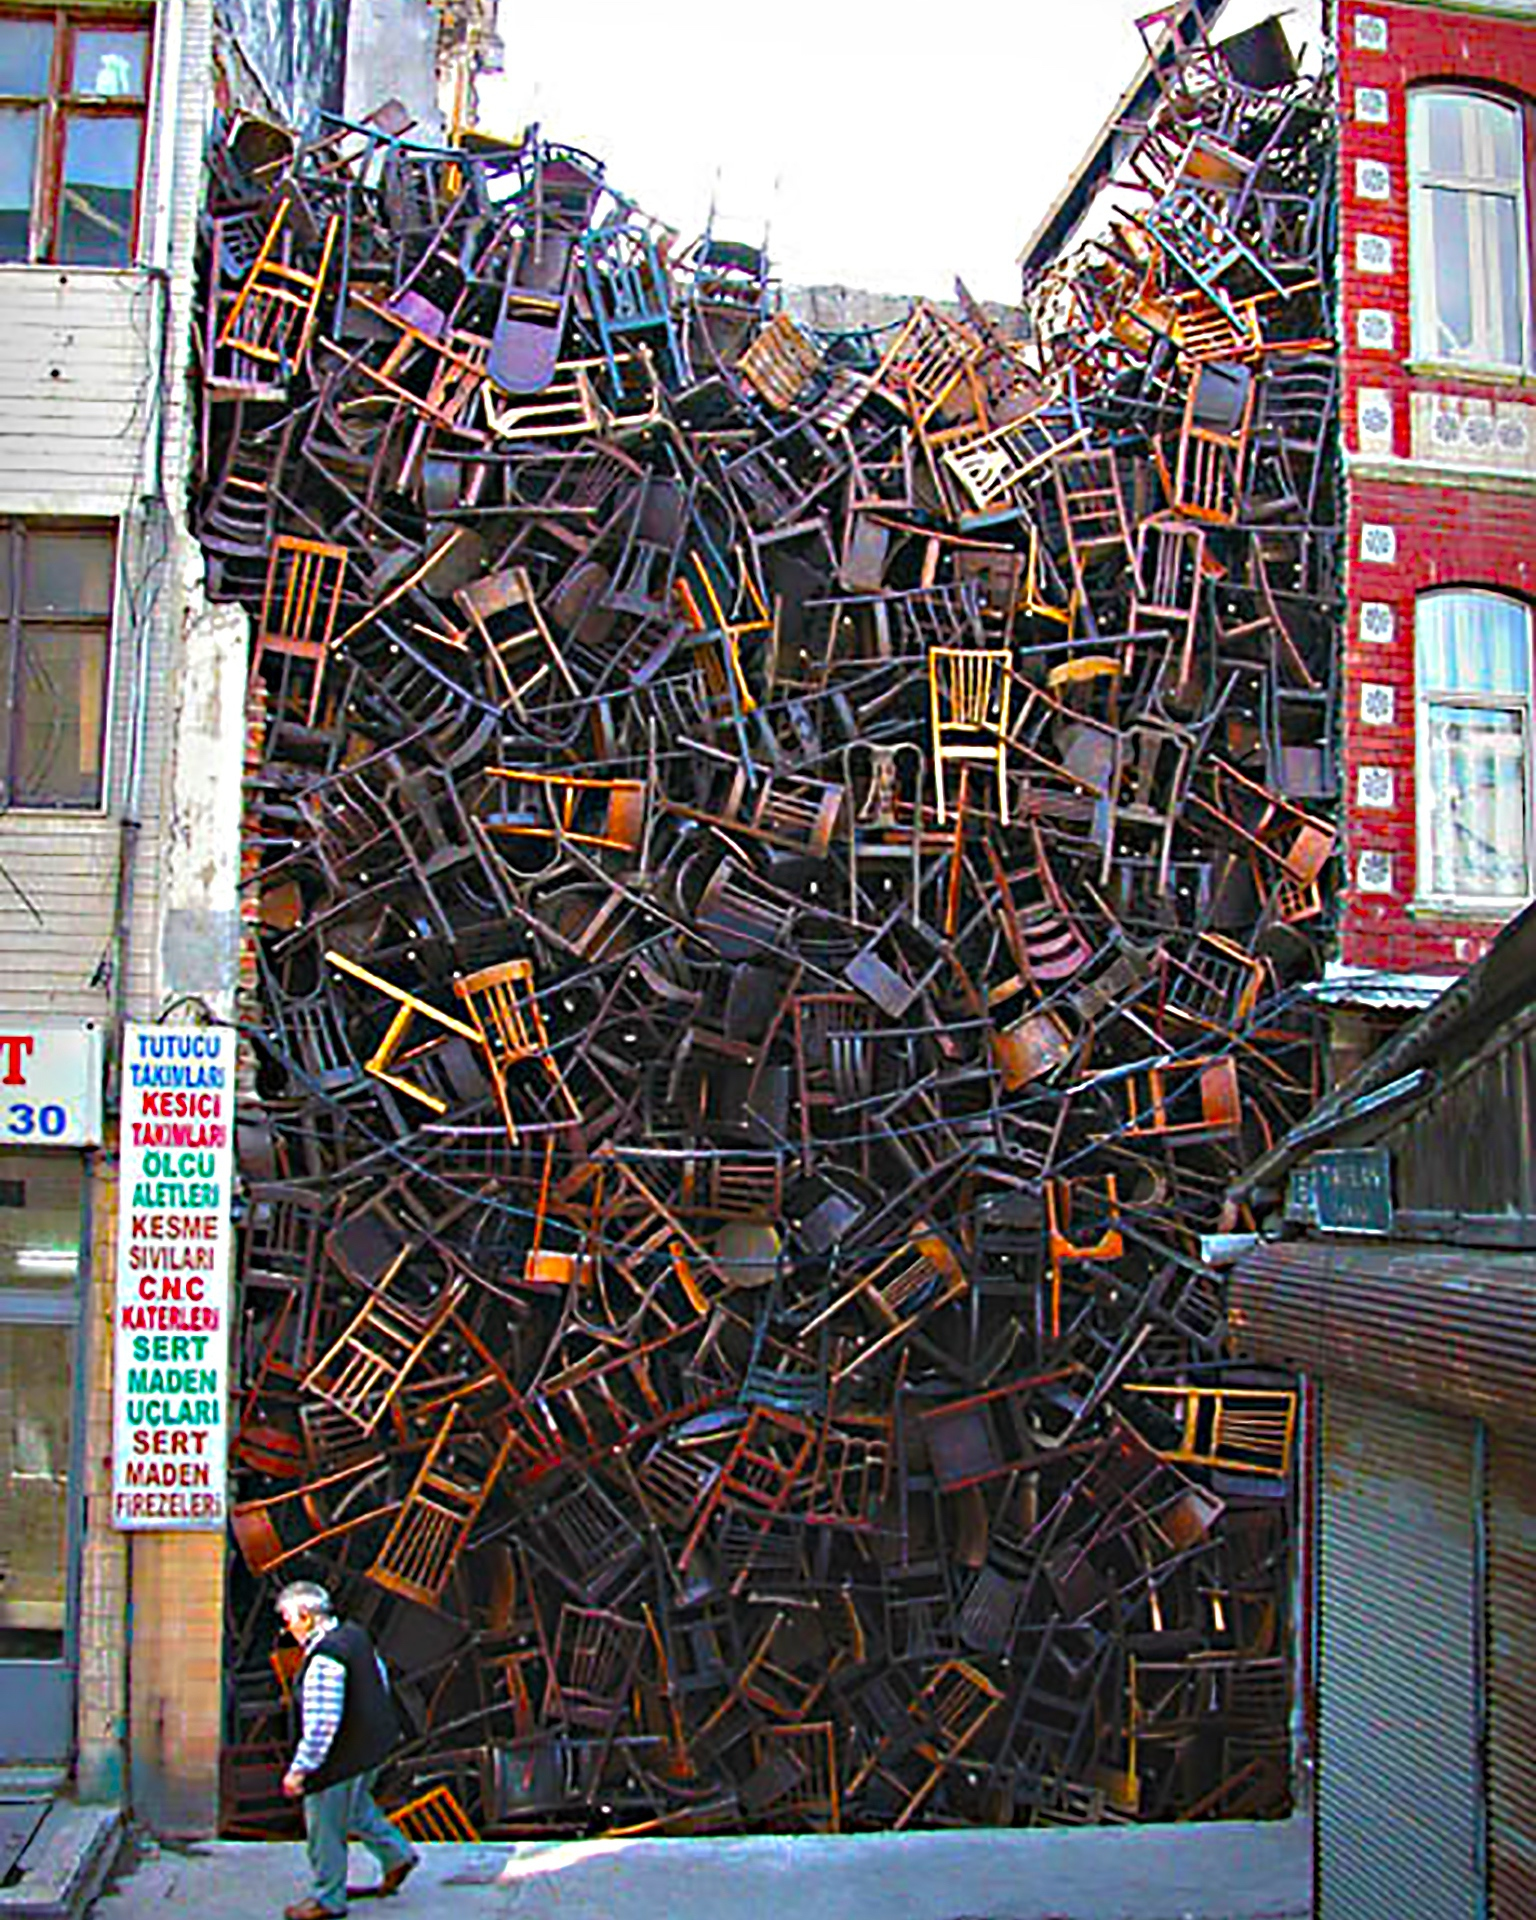 1550 Chairs Stacked Between Two City Buildings (2002) by Doris Salcedo - Pako Campo